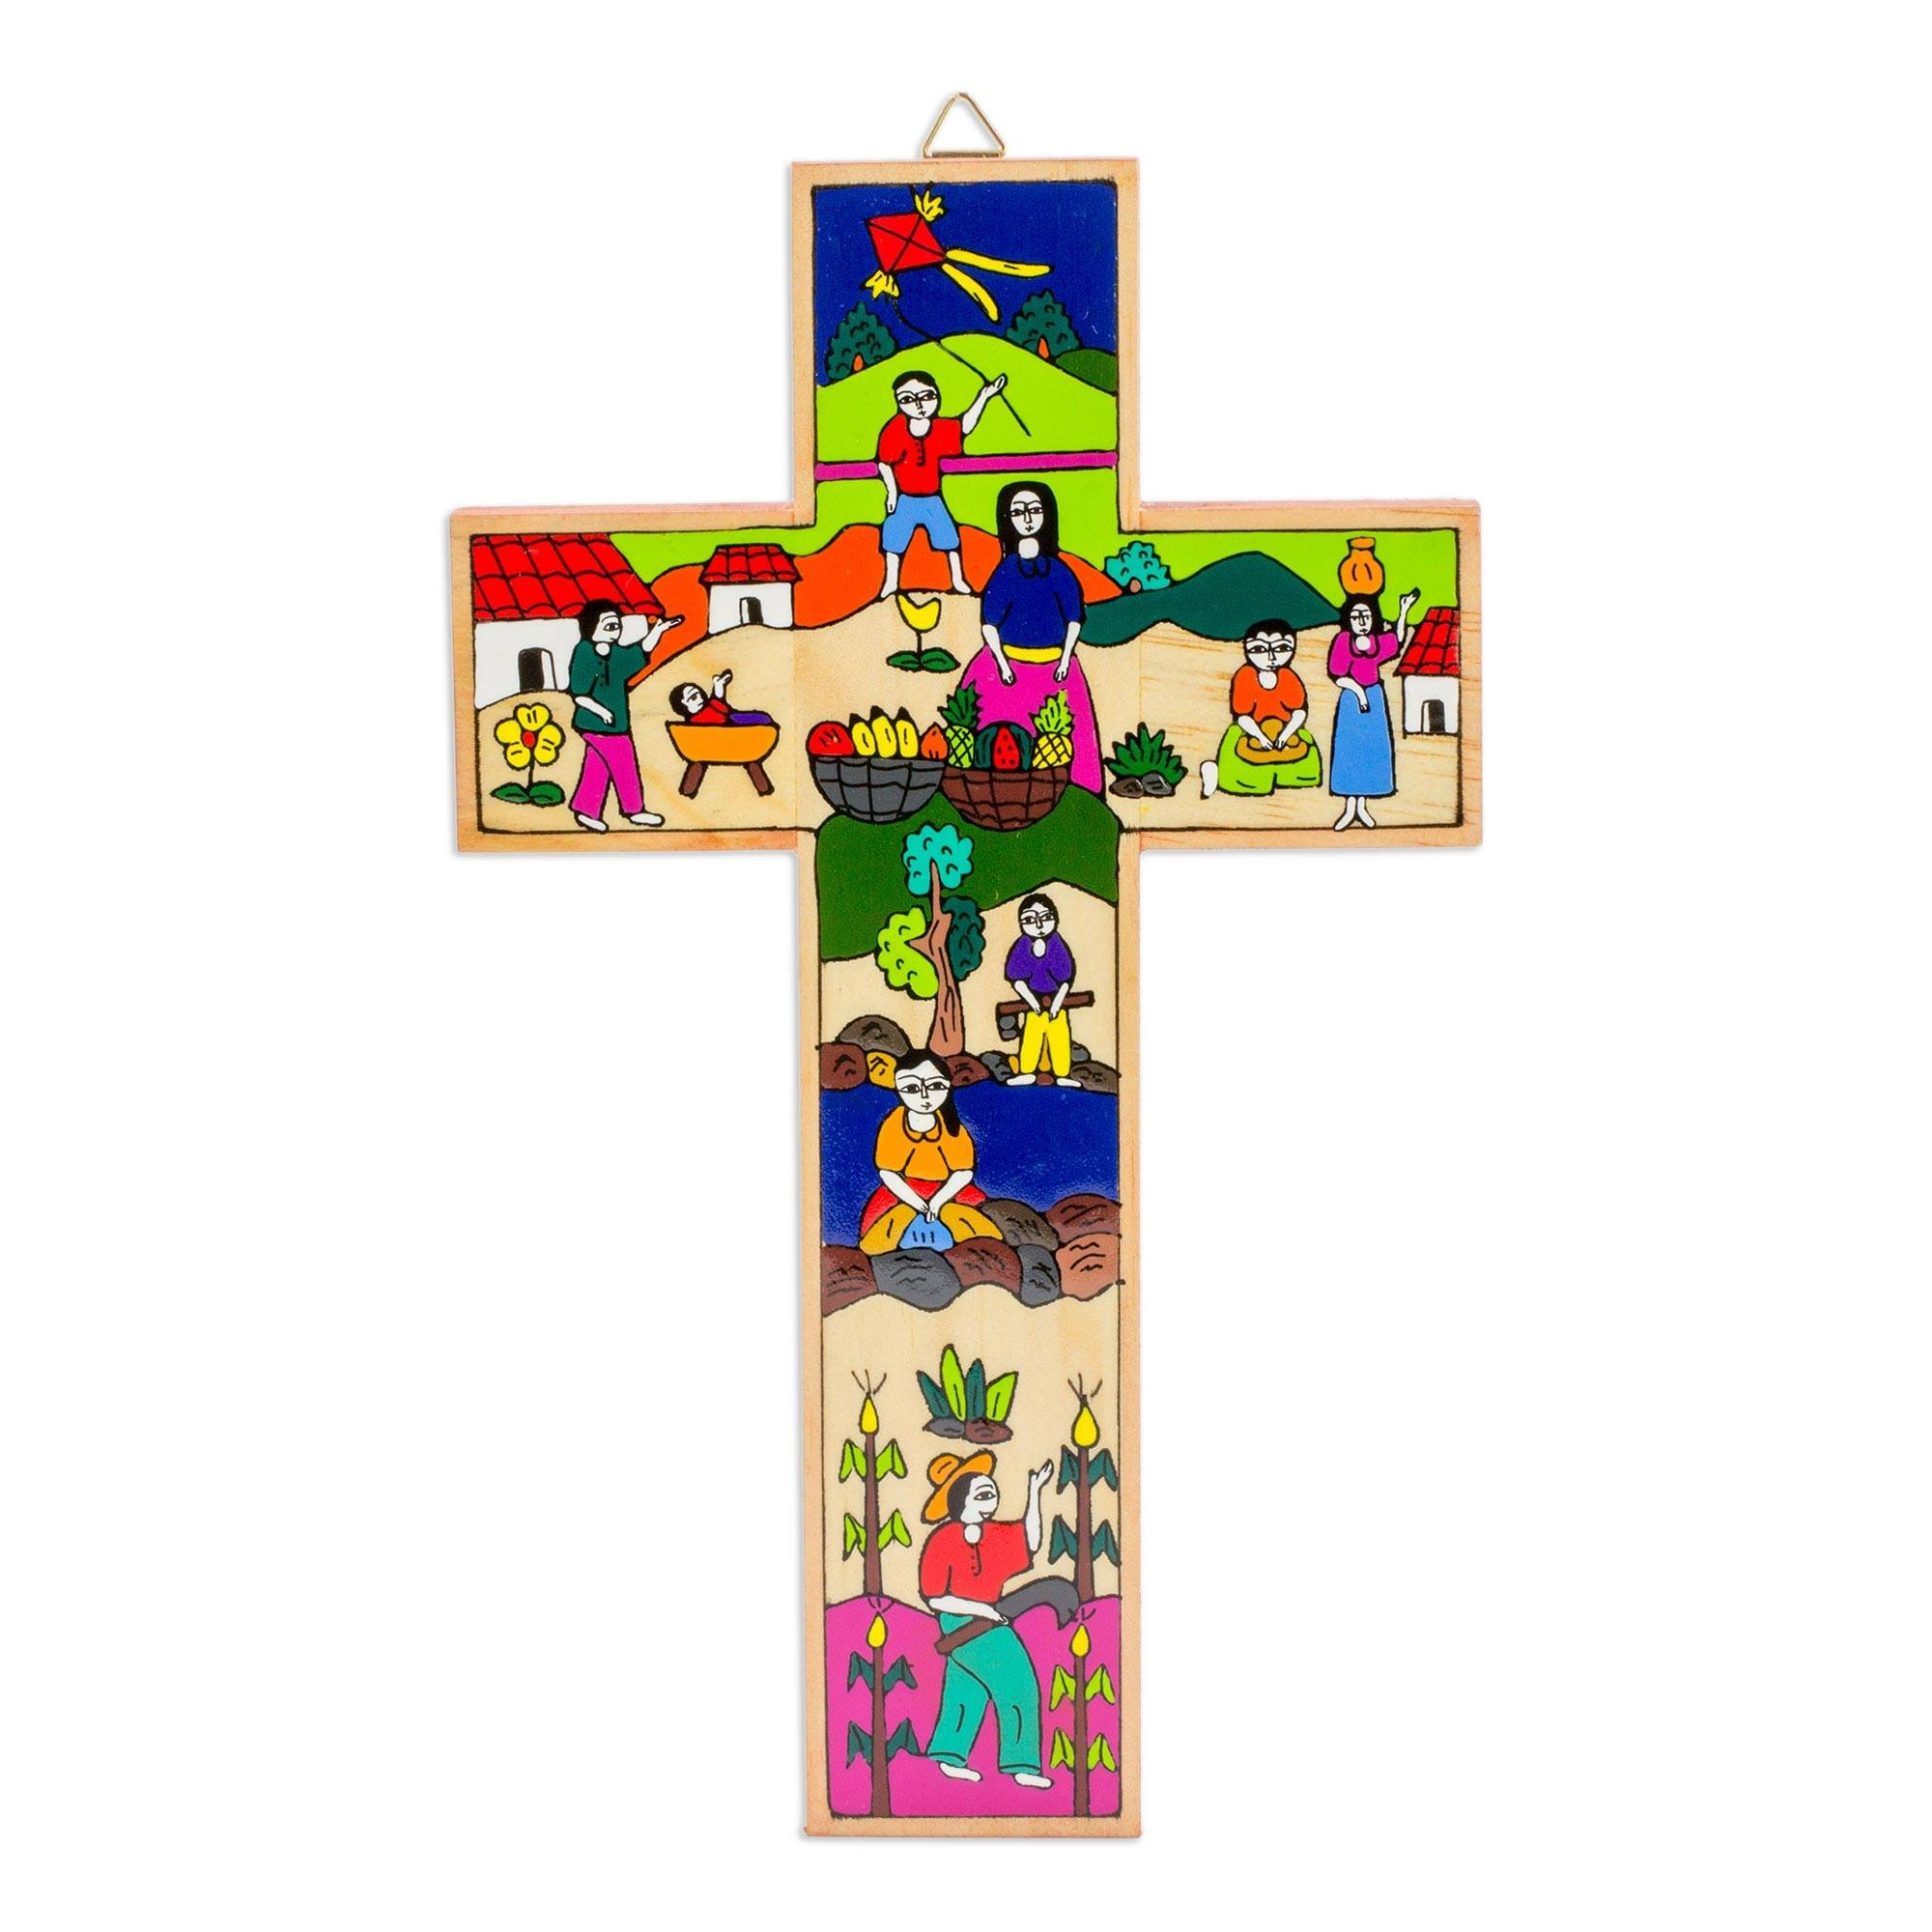 NOVICA Religious Pinewood Wall Cross, Multicolor, Life in The Country' by NOVICA (Image #1)